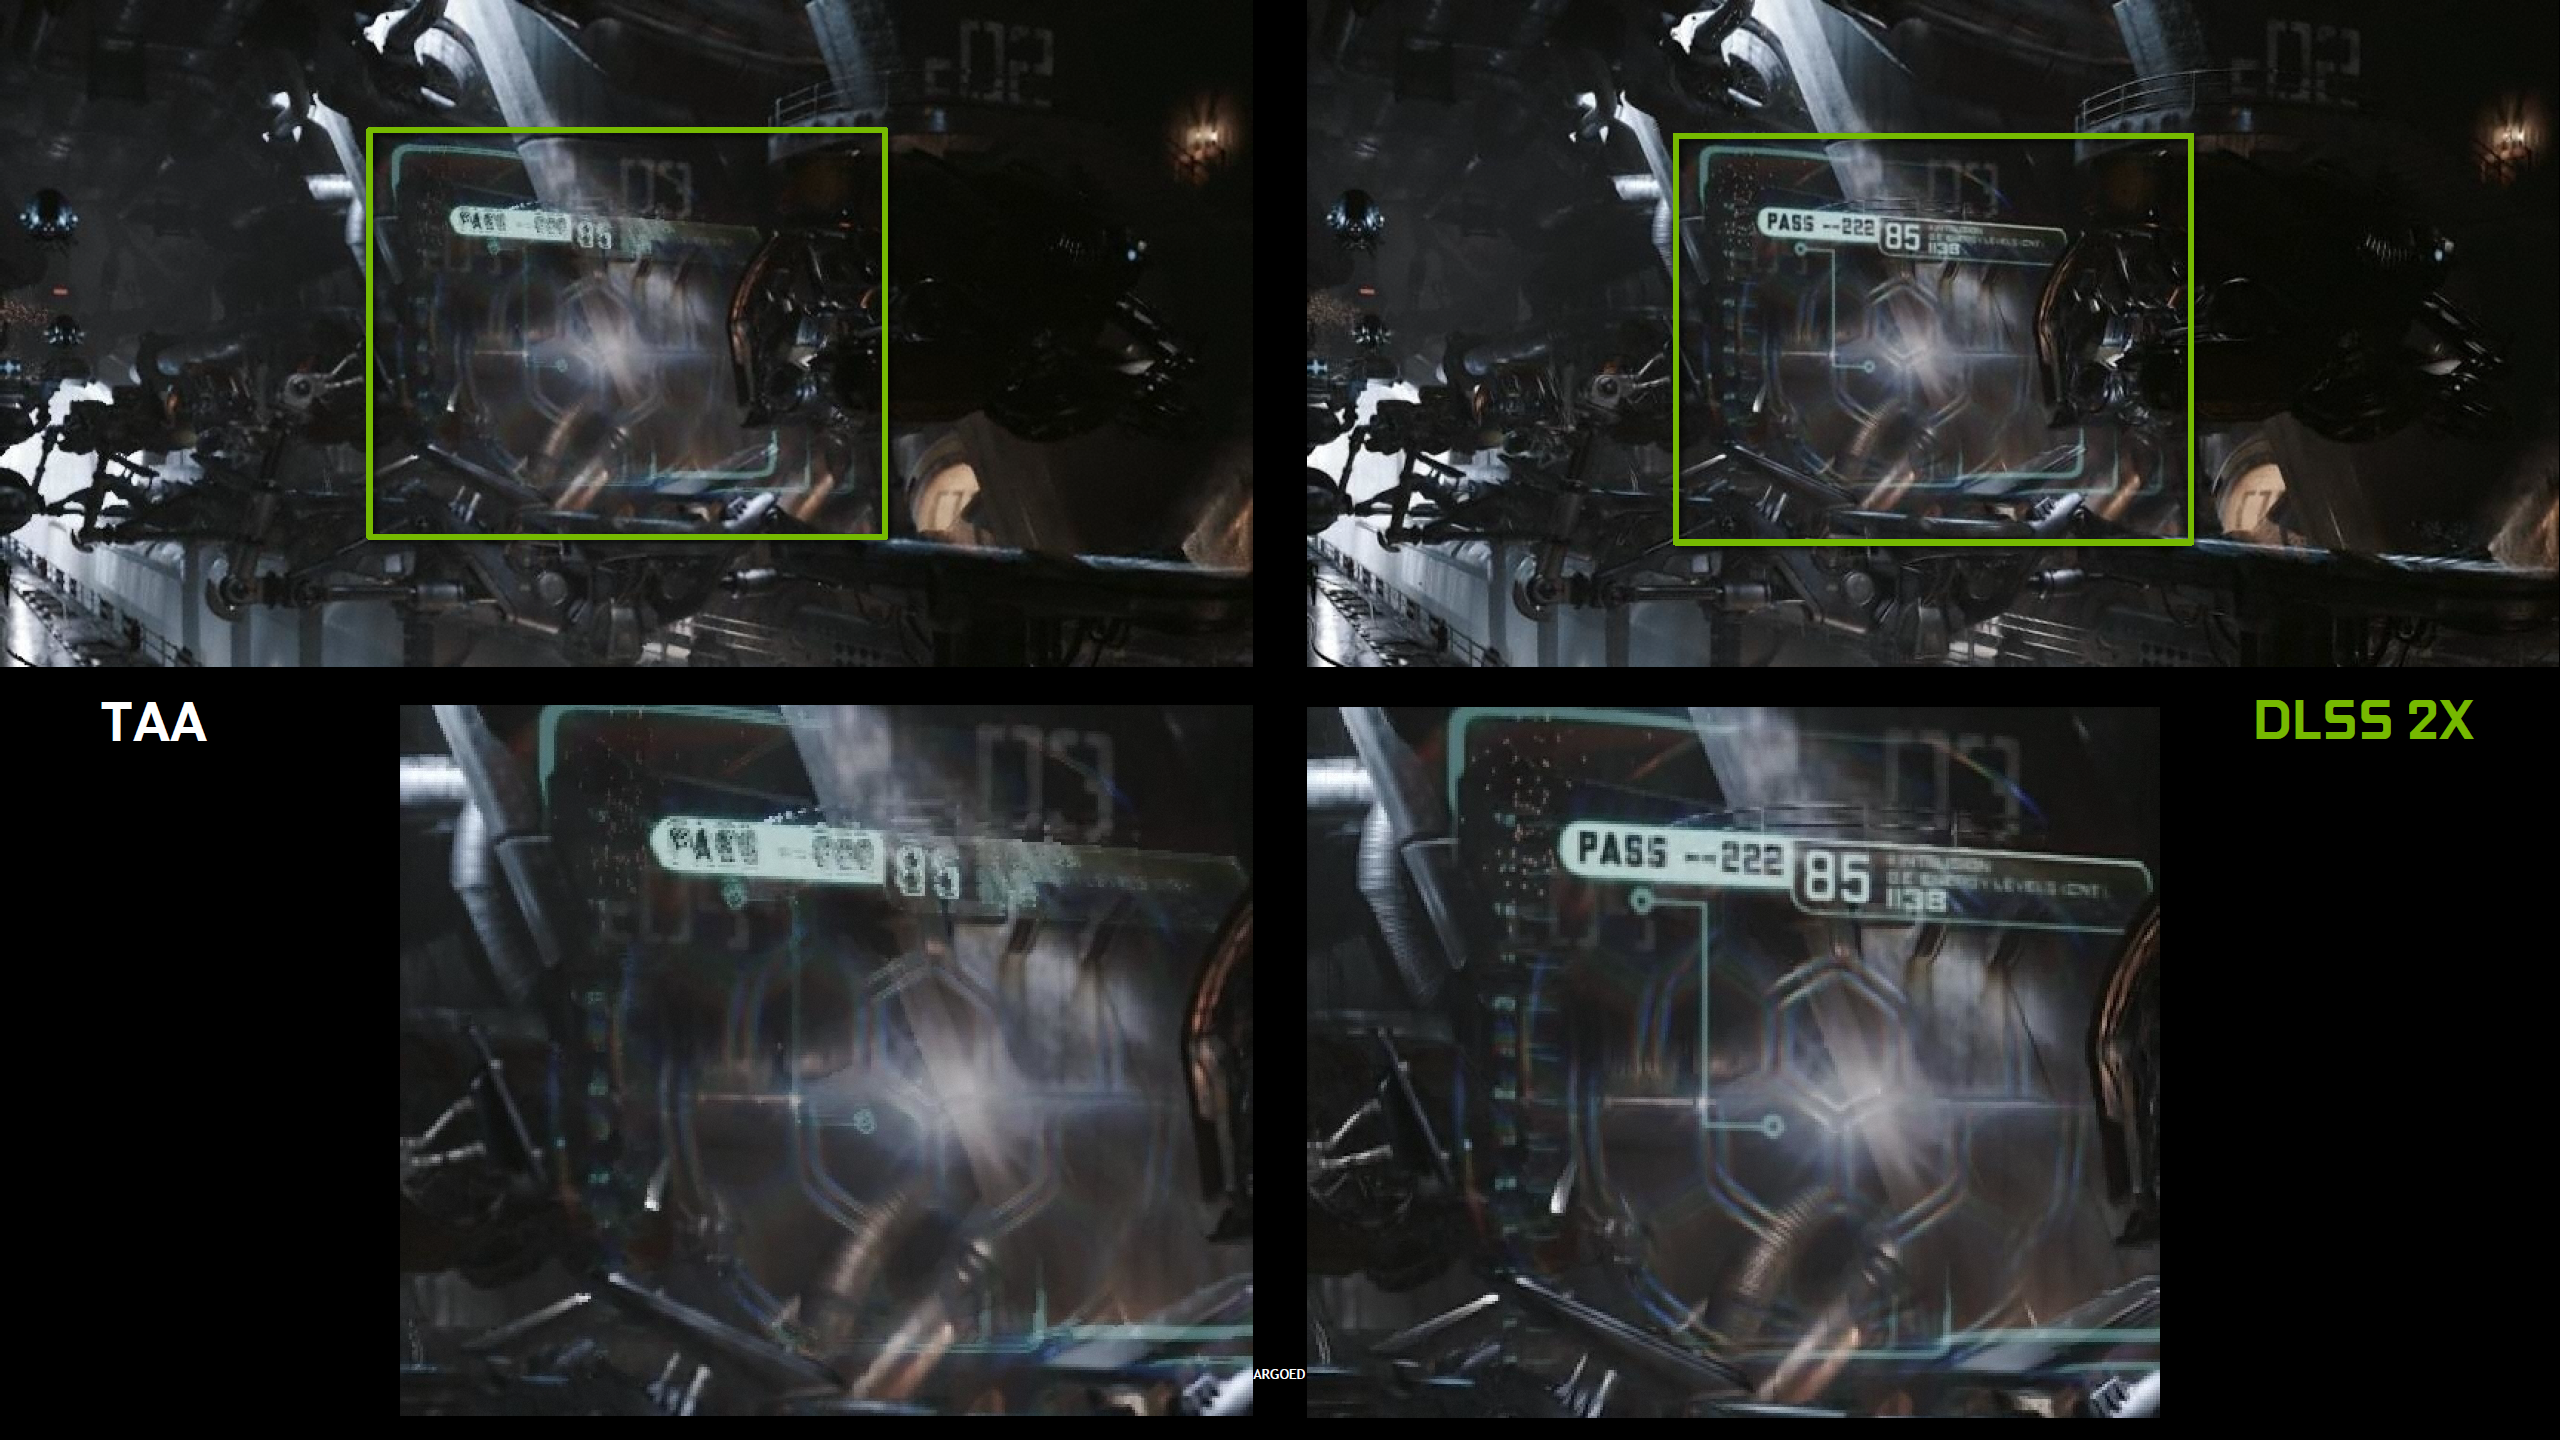 NVIDIA DLSS Explained - Much Higher Quality Than TAA or Much Faster